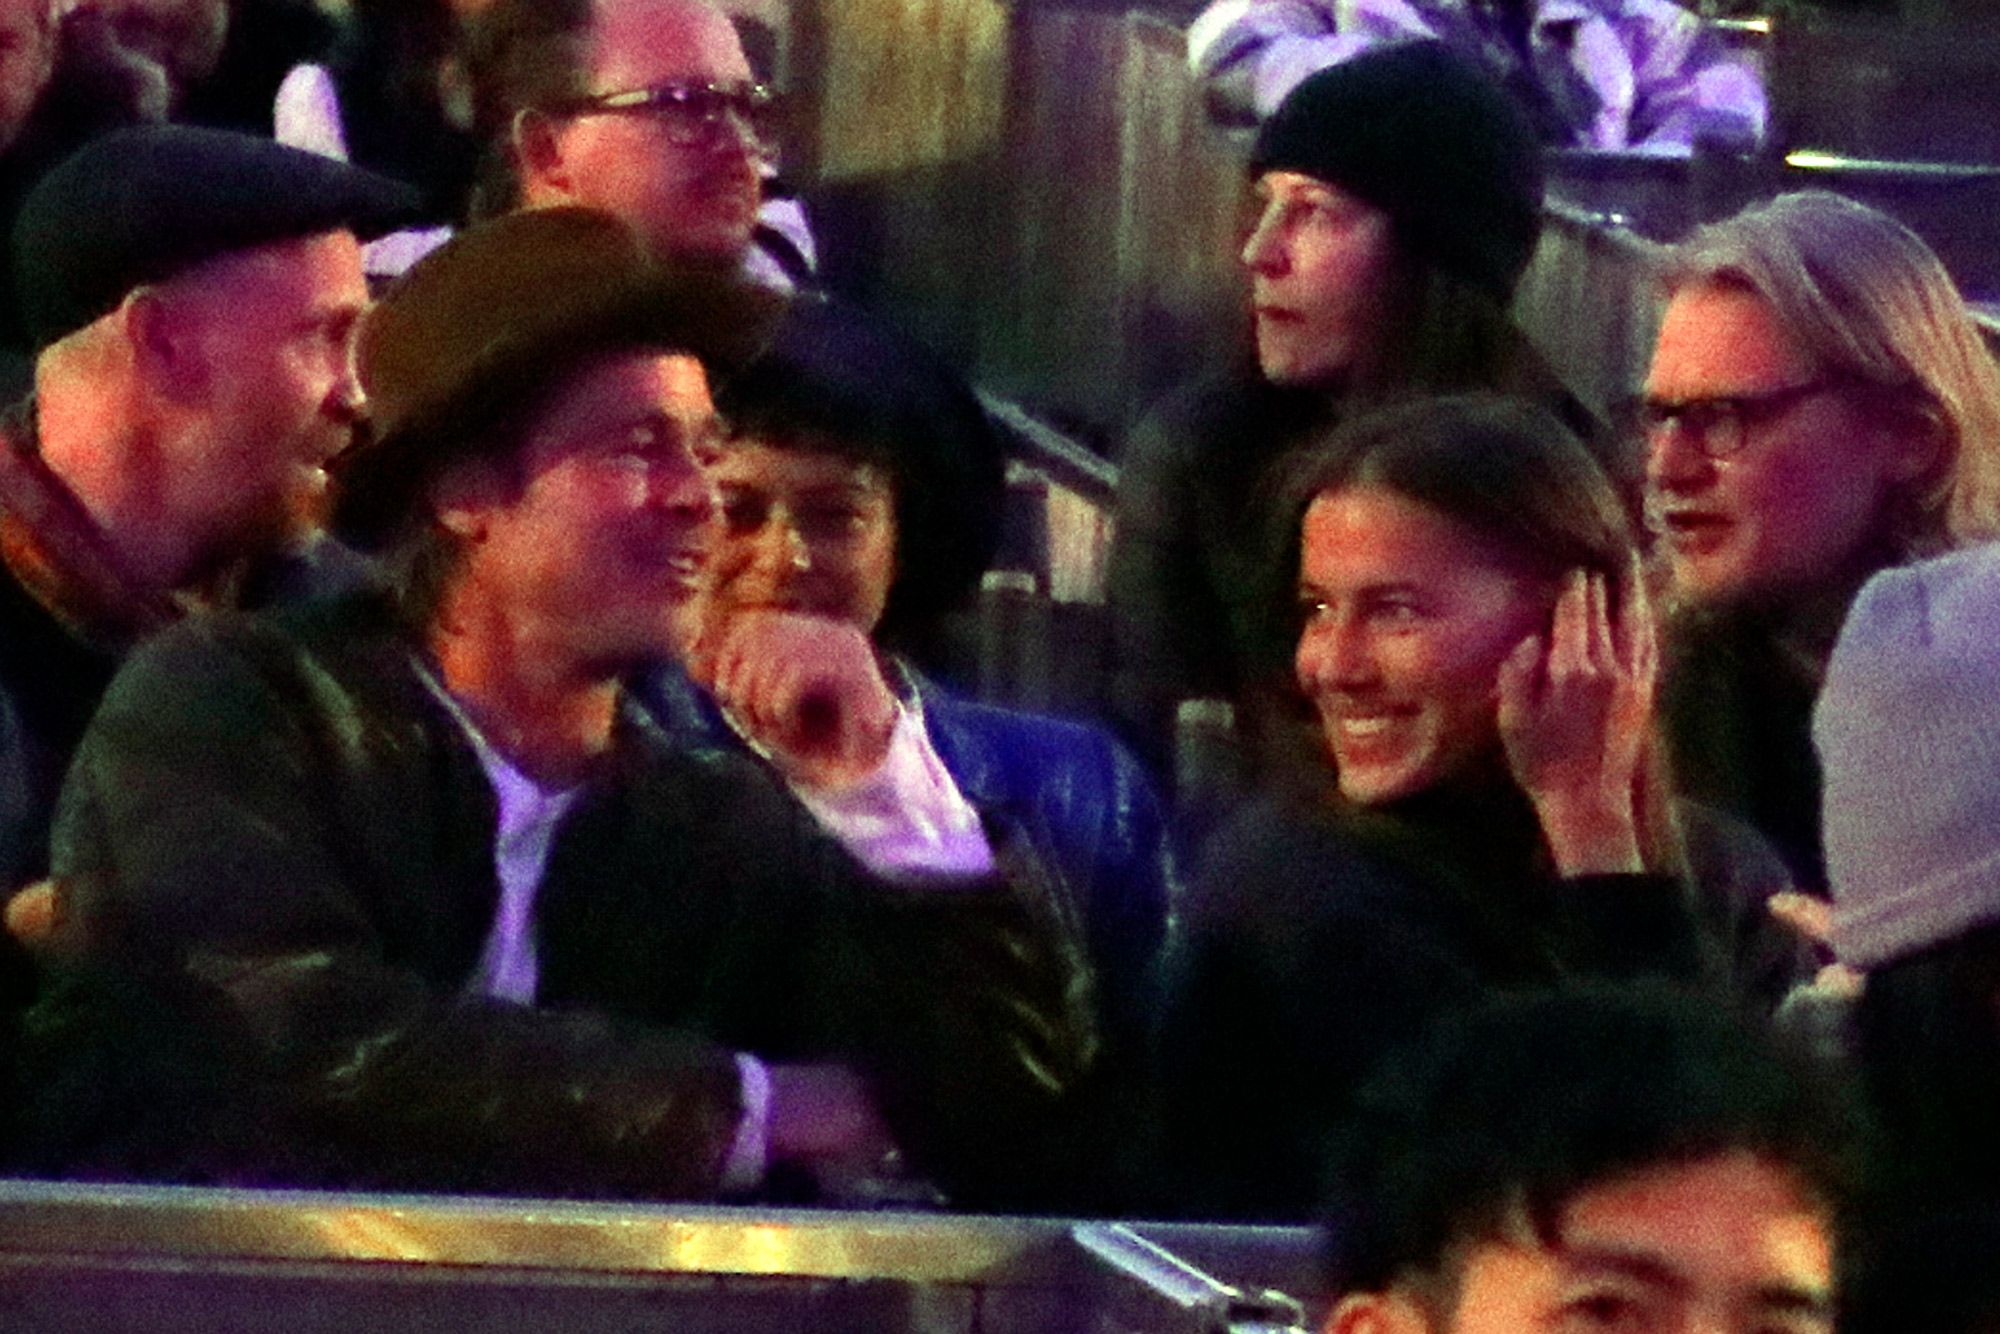 Nicole with her boyfriend Brad Pitt | Source: pagesix.com